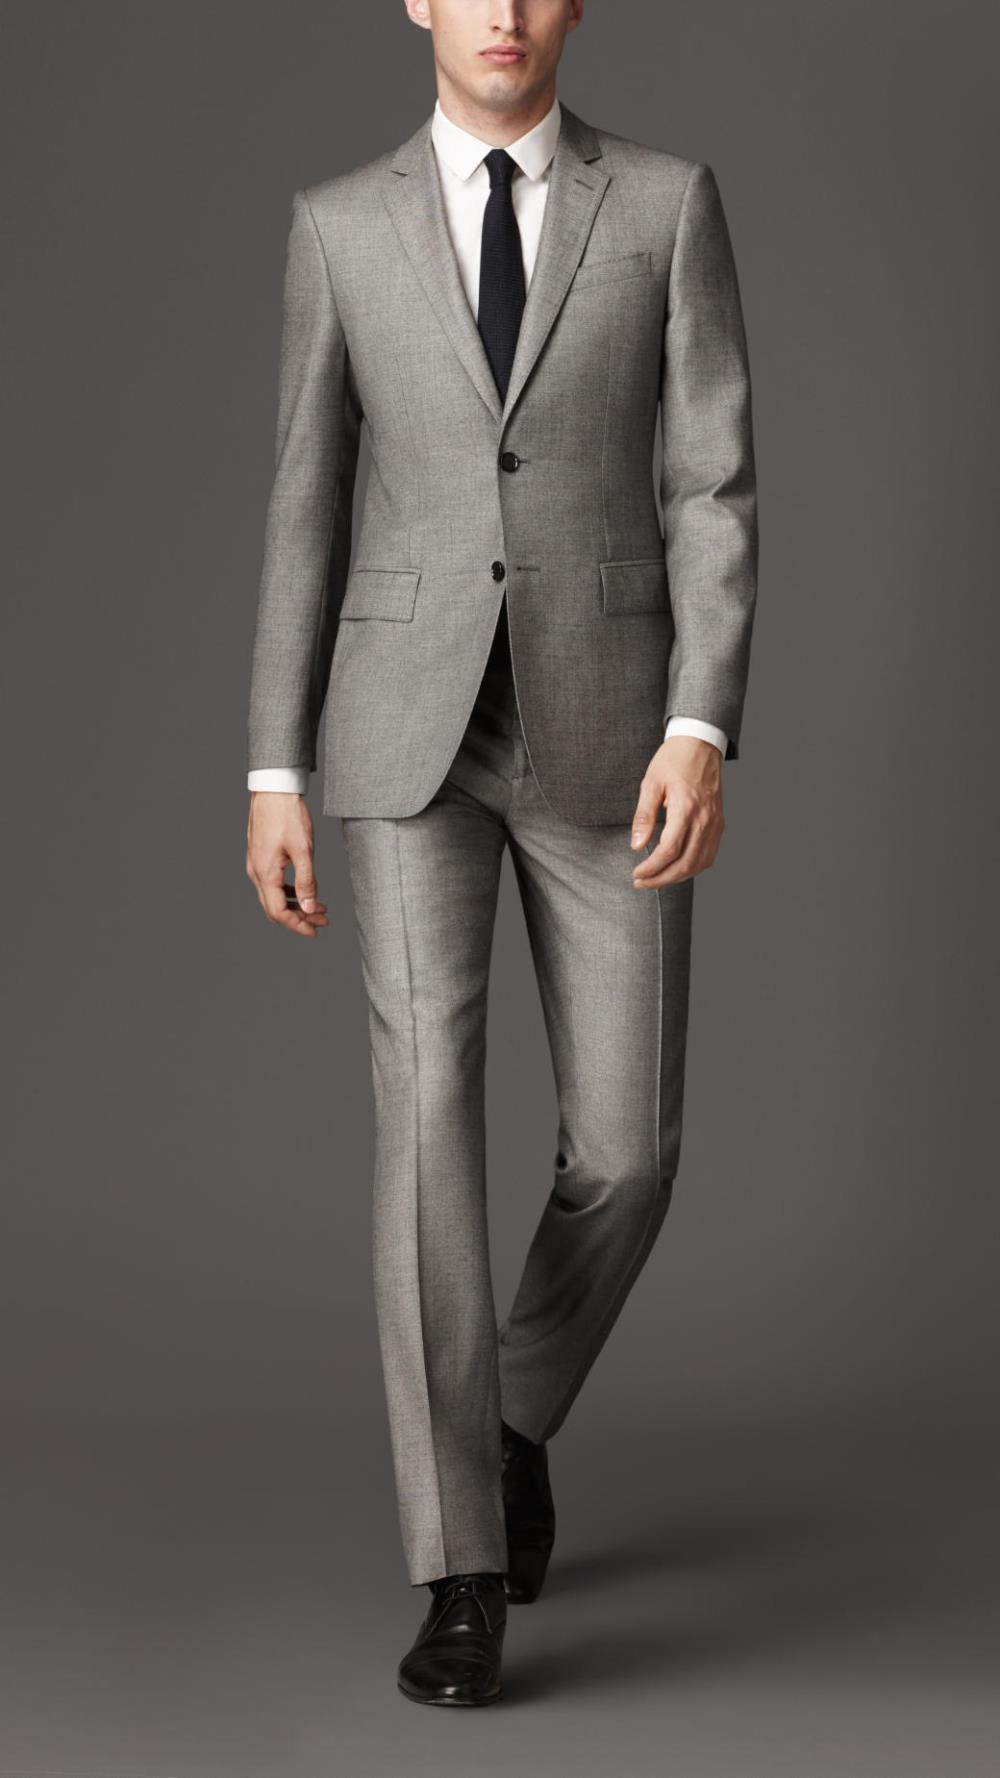 2014 new fashion wedding suits for men modern fit virgin